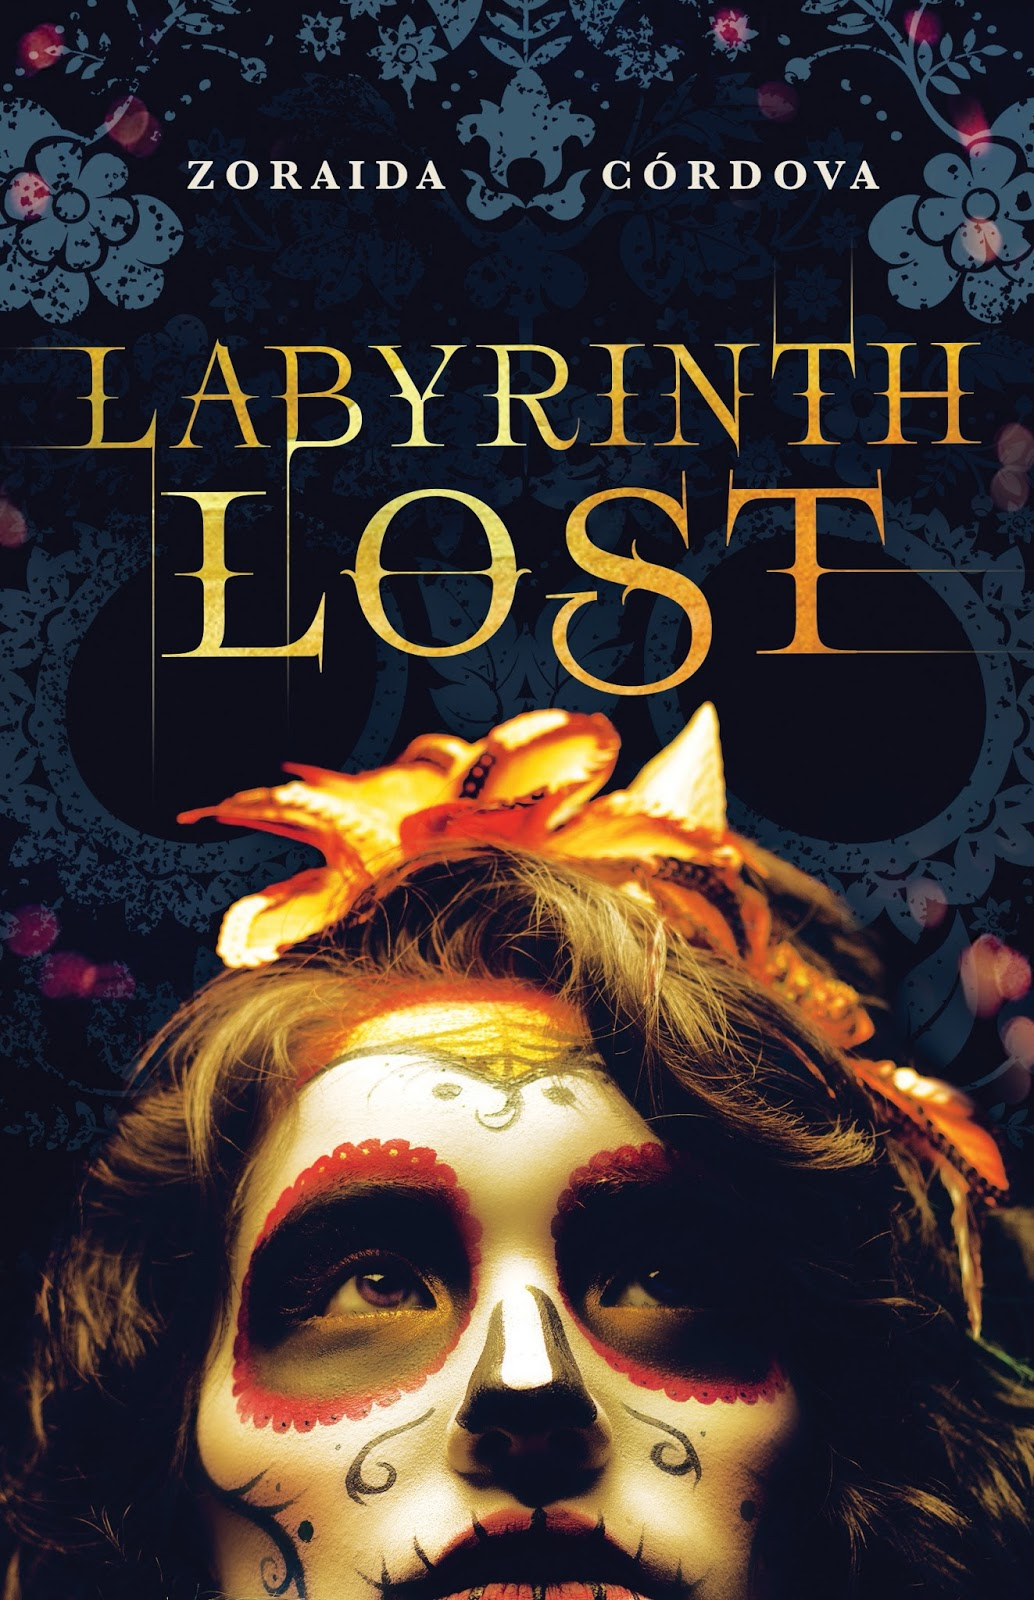 Rockstar book tours tour schedule labyrinth lost by zoraida cordova about the book title labyrinth lost fandeluxe Document